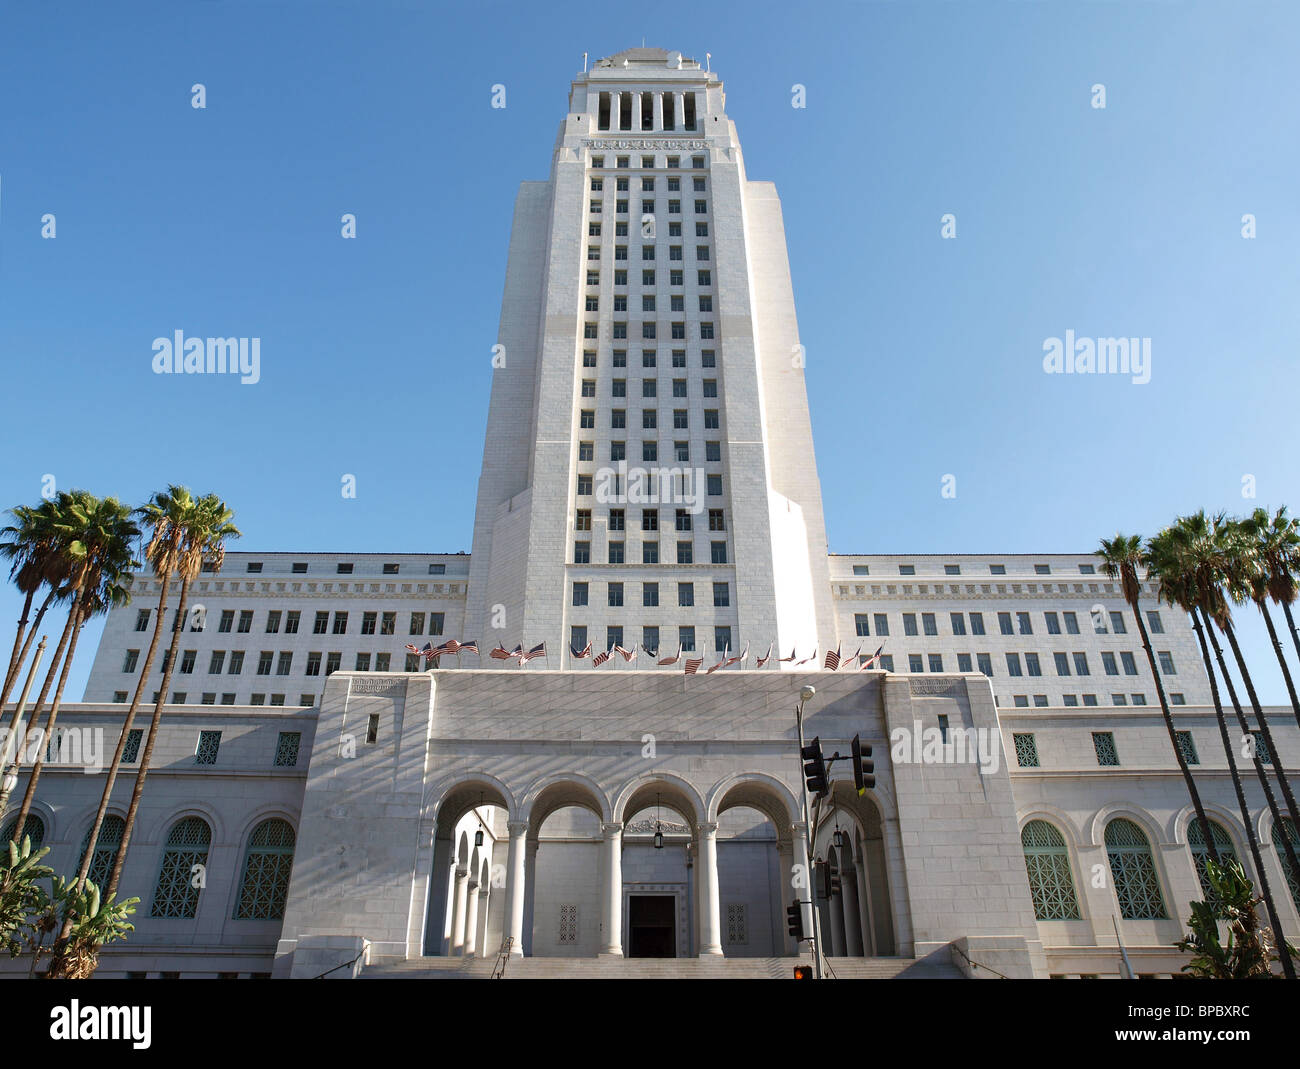 Los Angeles City Hall - Spring Street entrance. - Stock Image